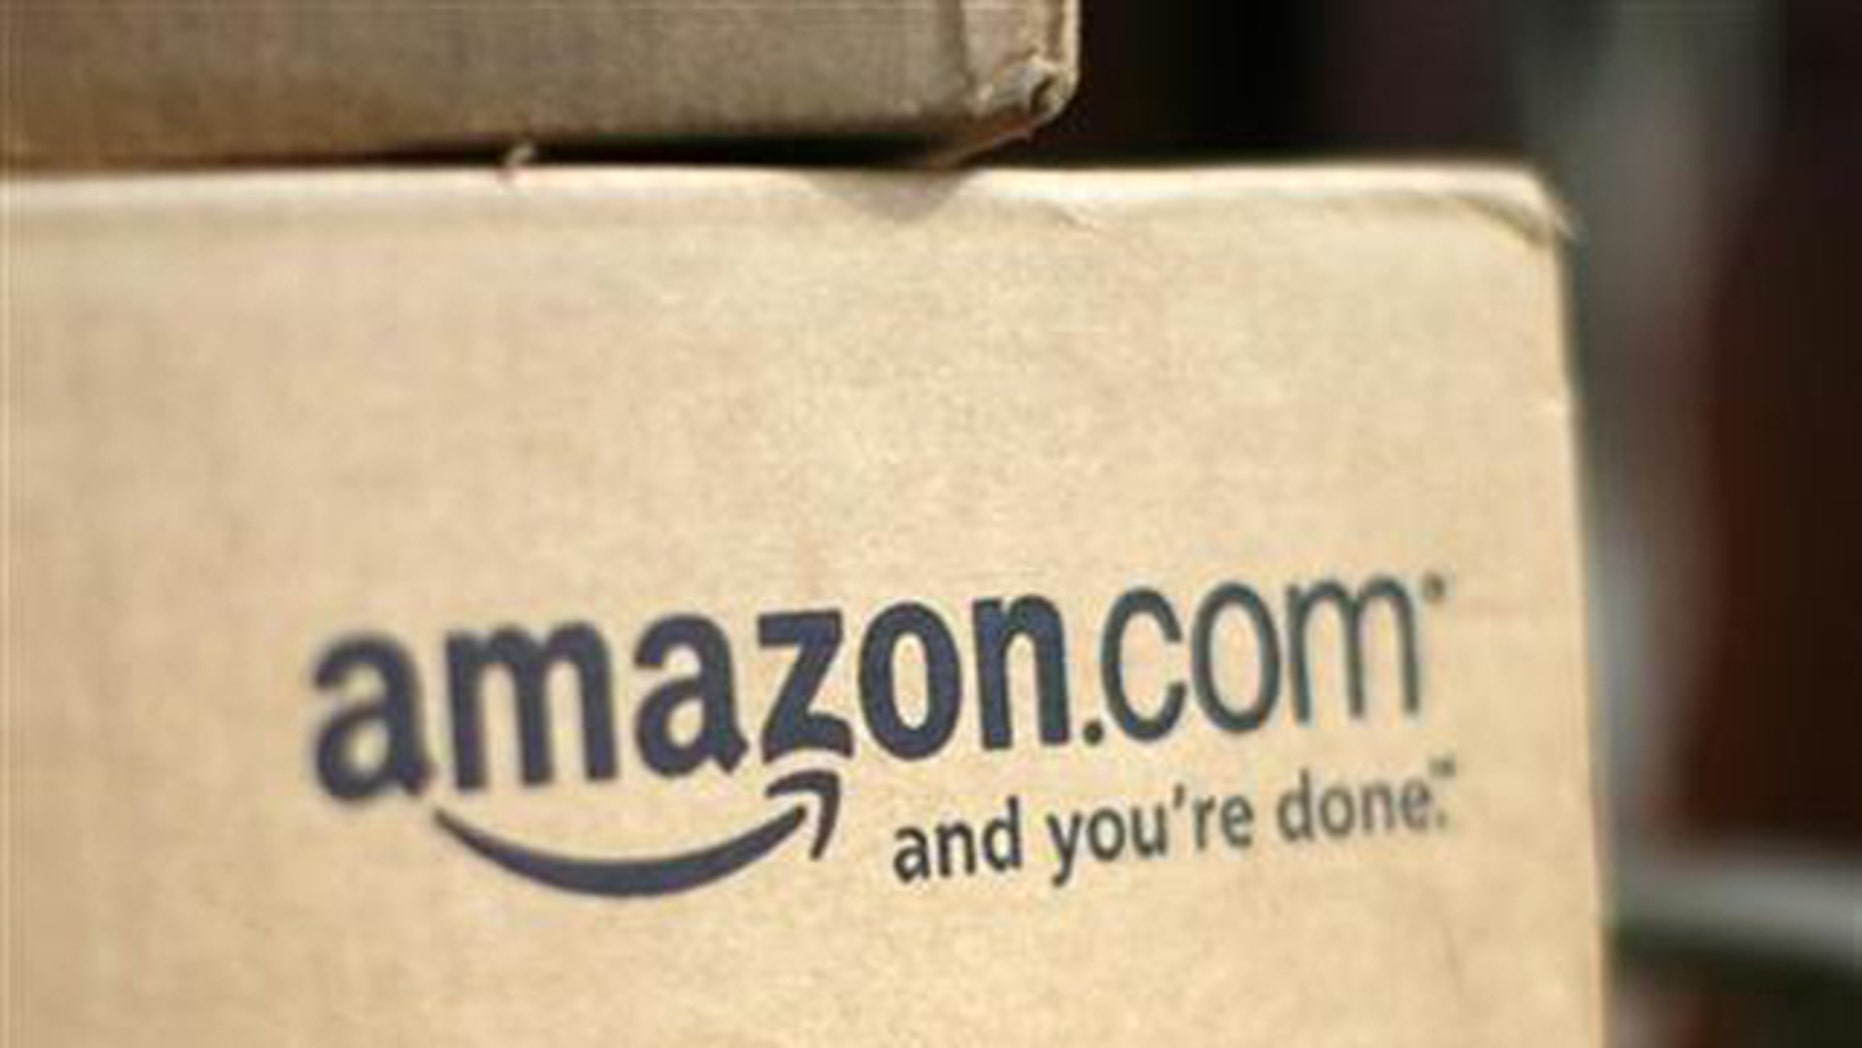 July 23, 2008: A box from Amazon.com sits on the porch of a house in Golden, Colorado.